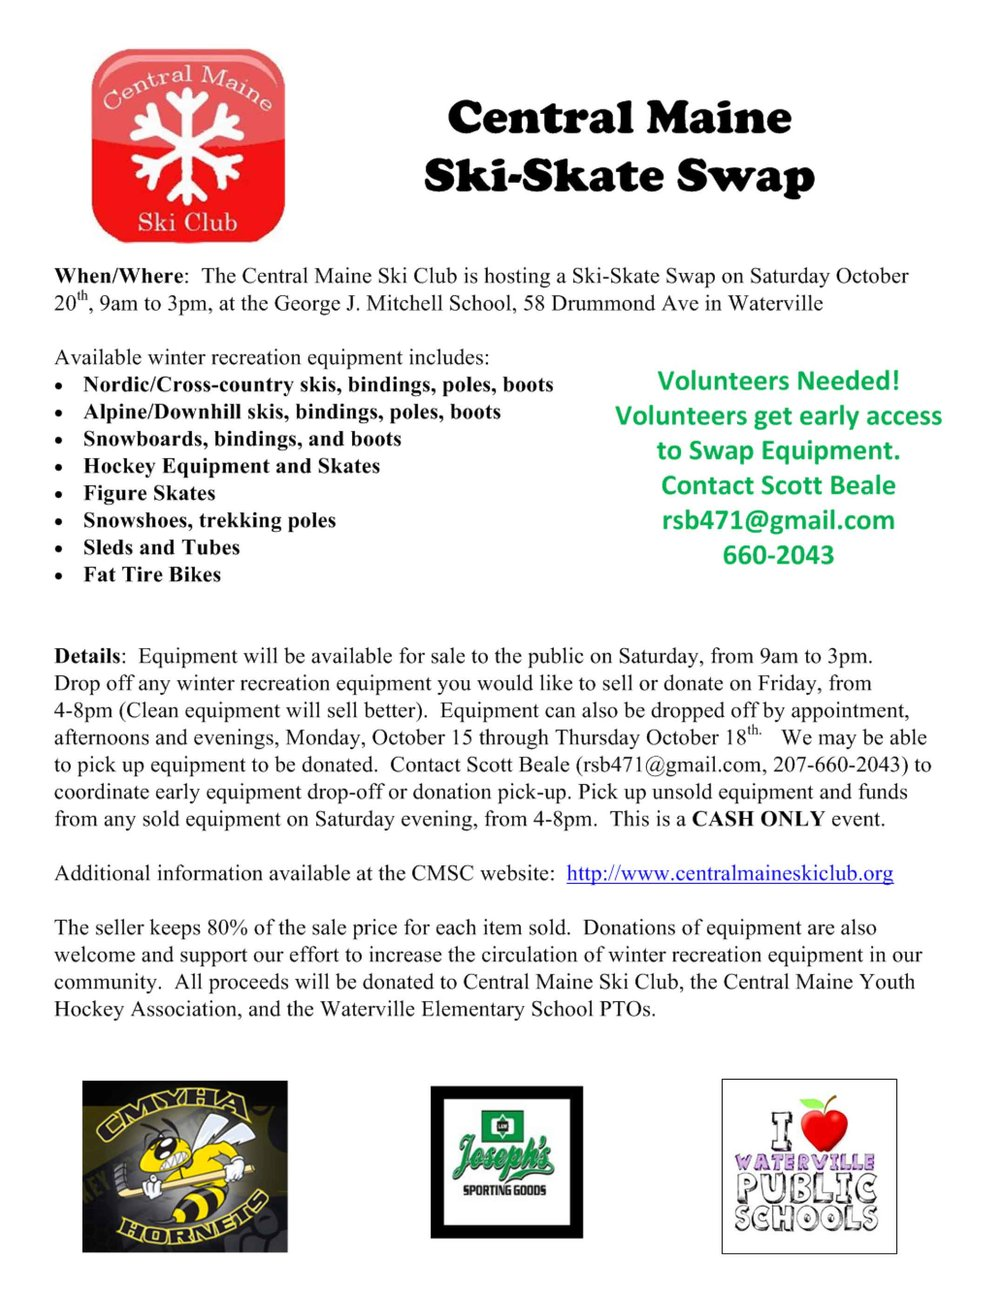 Ski-Swap-Information-Flyer-v4.jpg